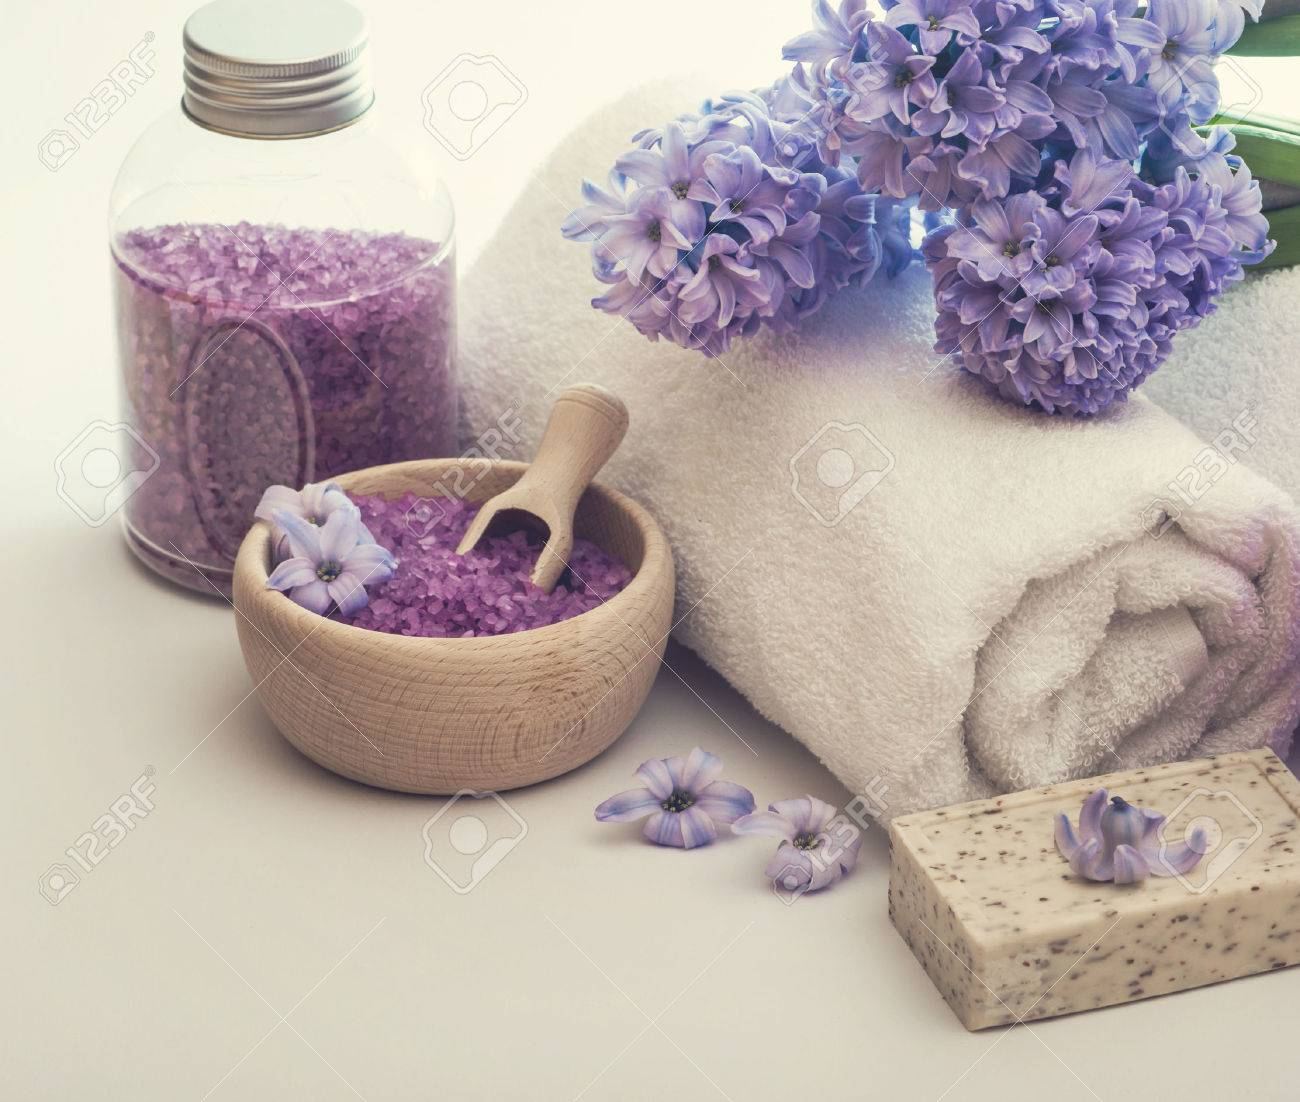 Composition of spa treatment on the white wooden table - 40465032